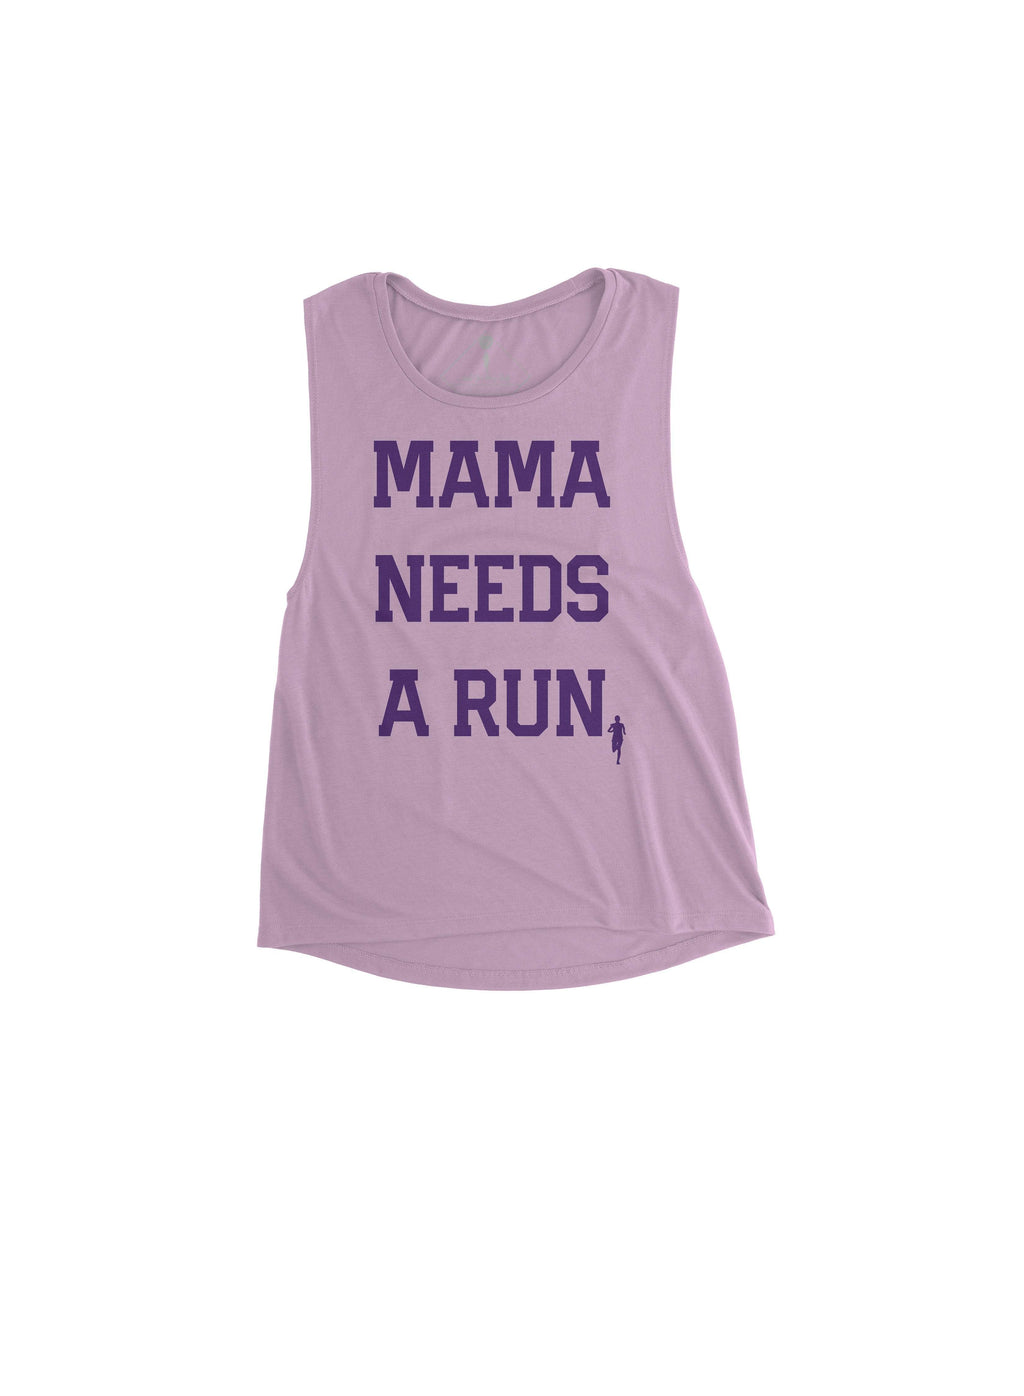 Mama Needs A Run Muscle Tank - Sarah Marie Design Studio